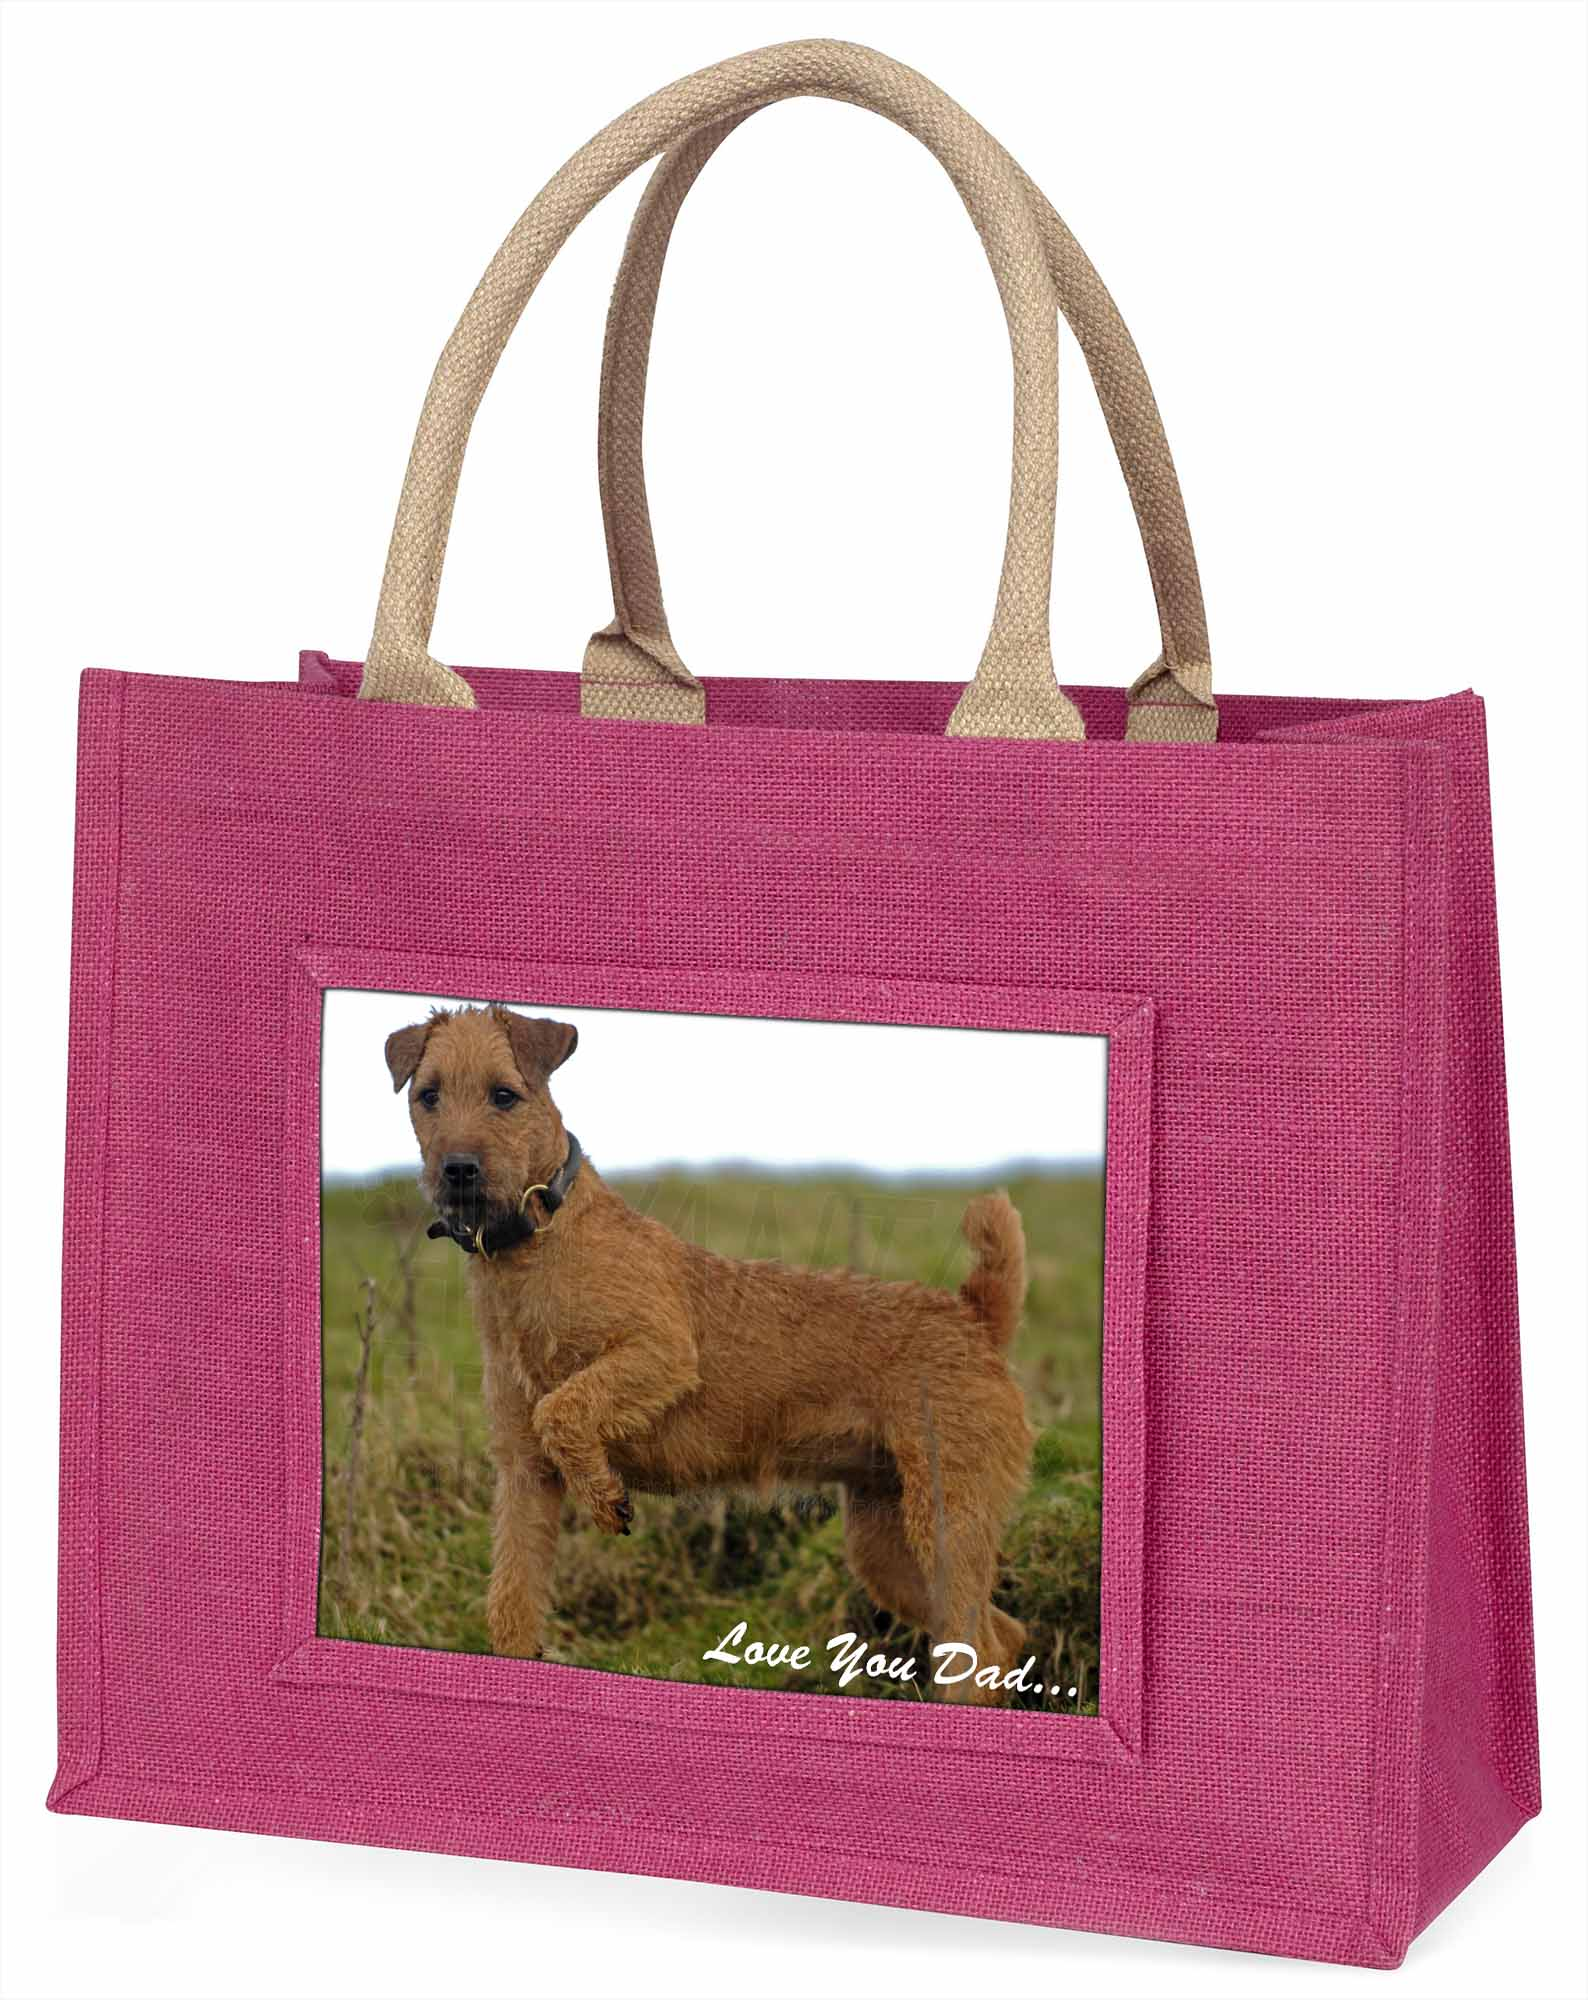 Lakeland Terrier 'Love You Dad' Large Pink Shopping Bag Christmas Pre, DAD73BLP